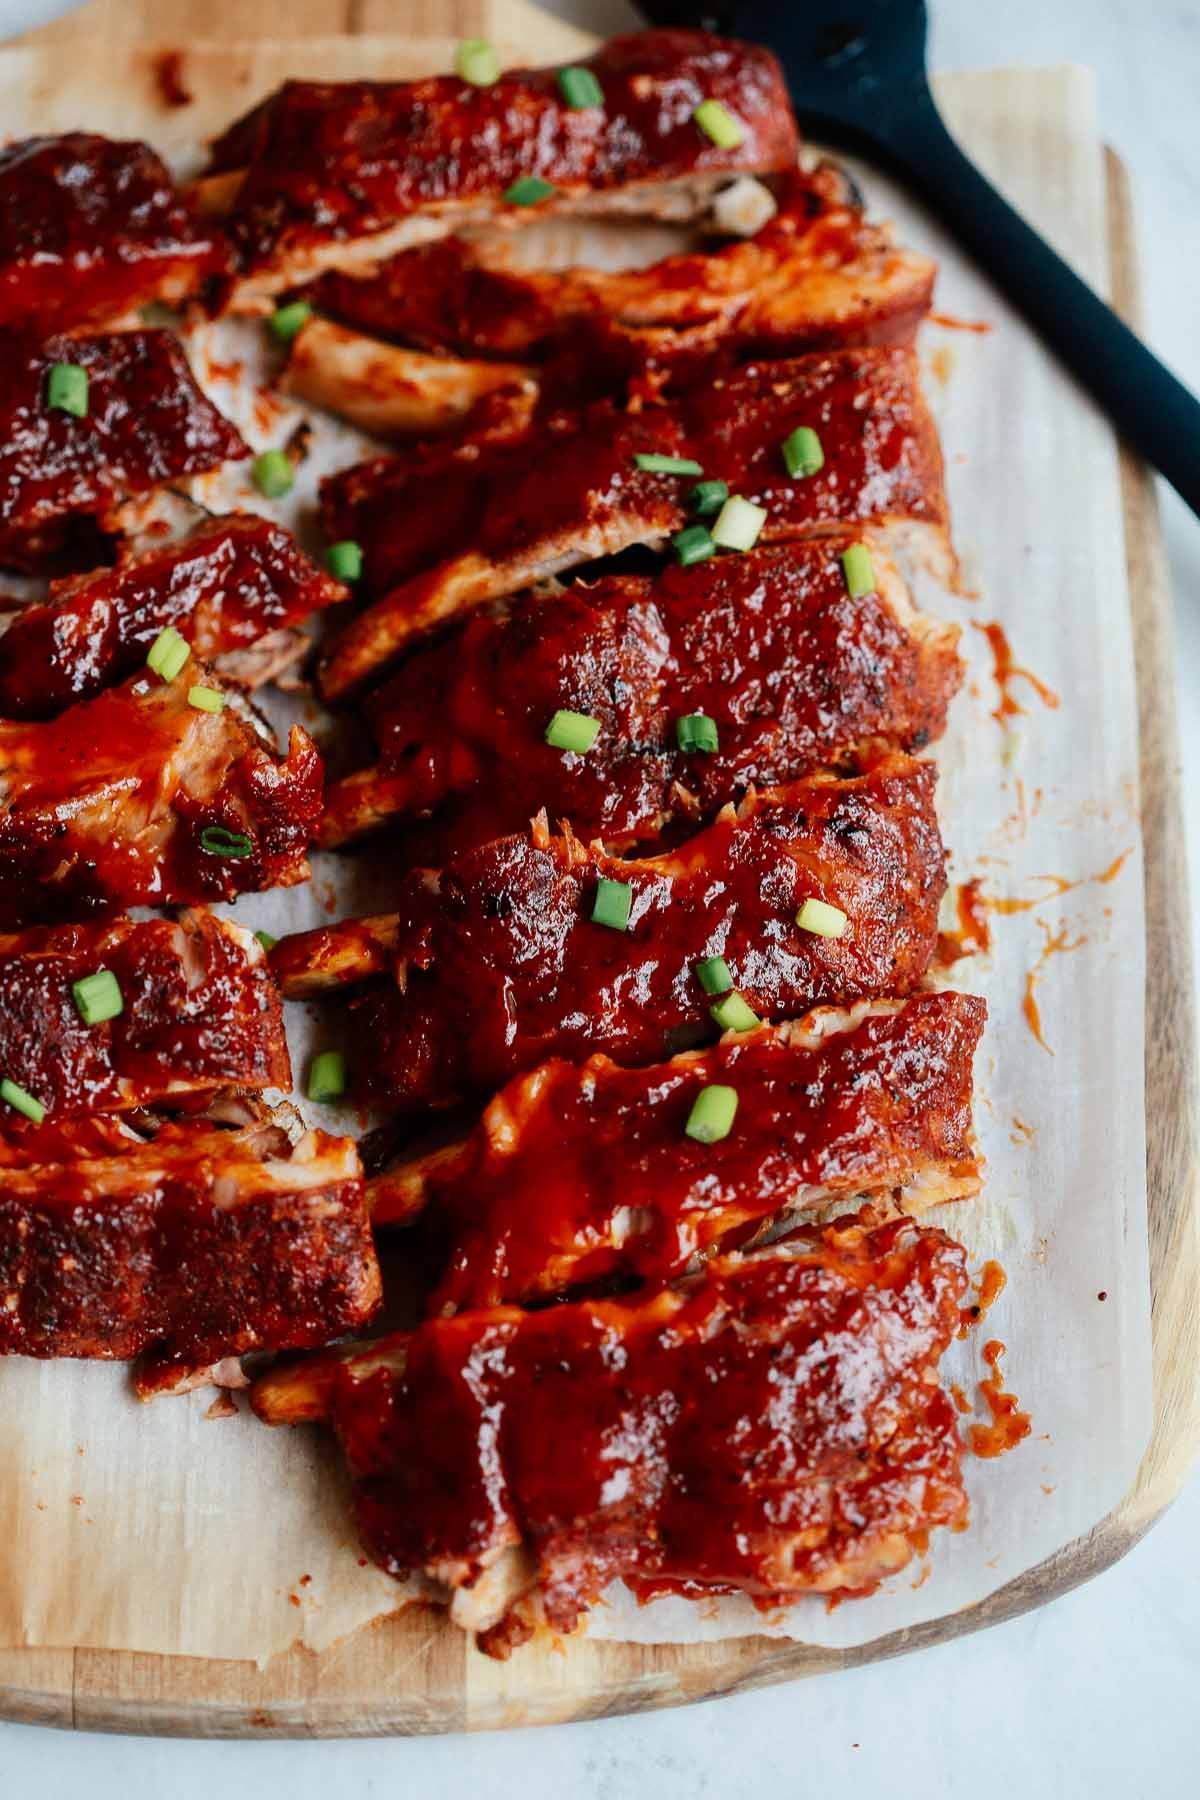 Close up of a rack of oven baked ribs.